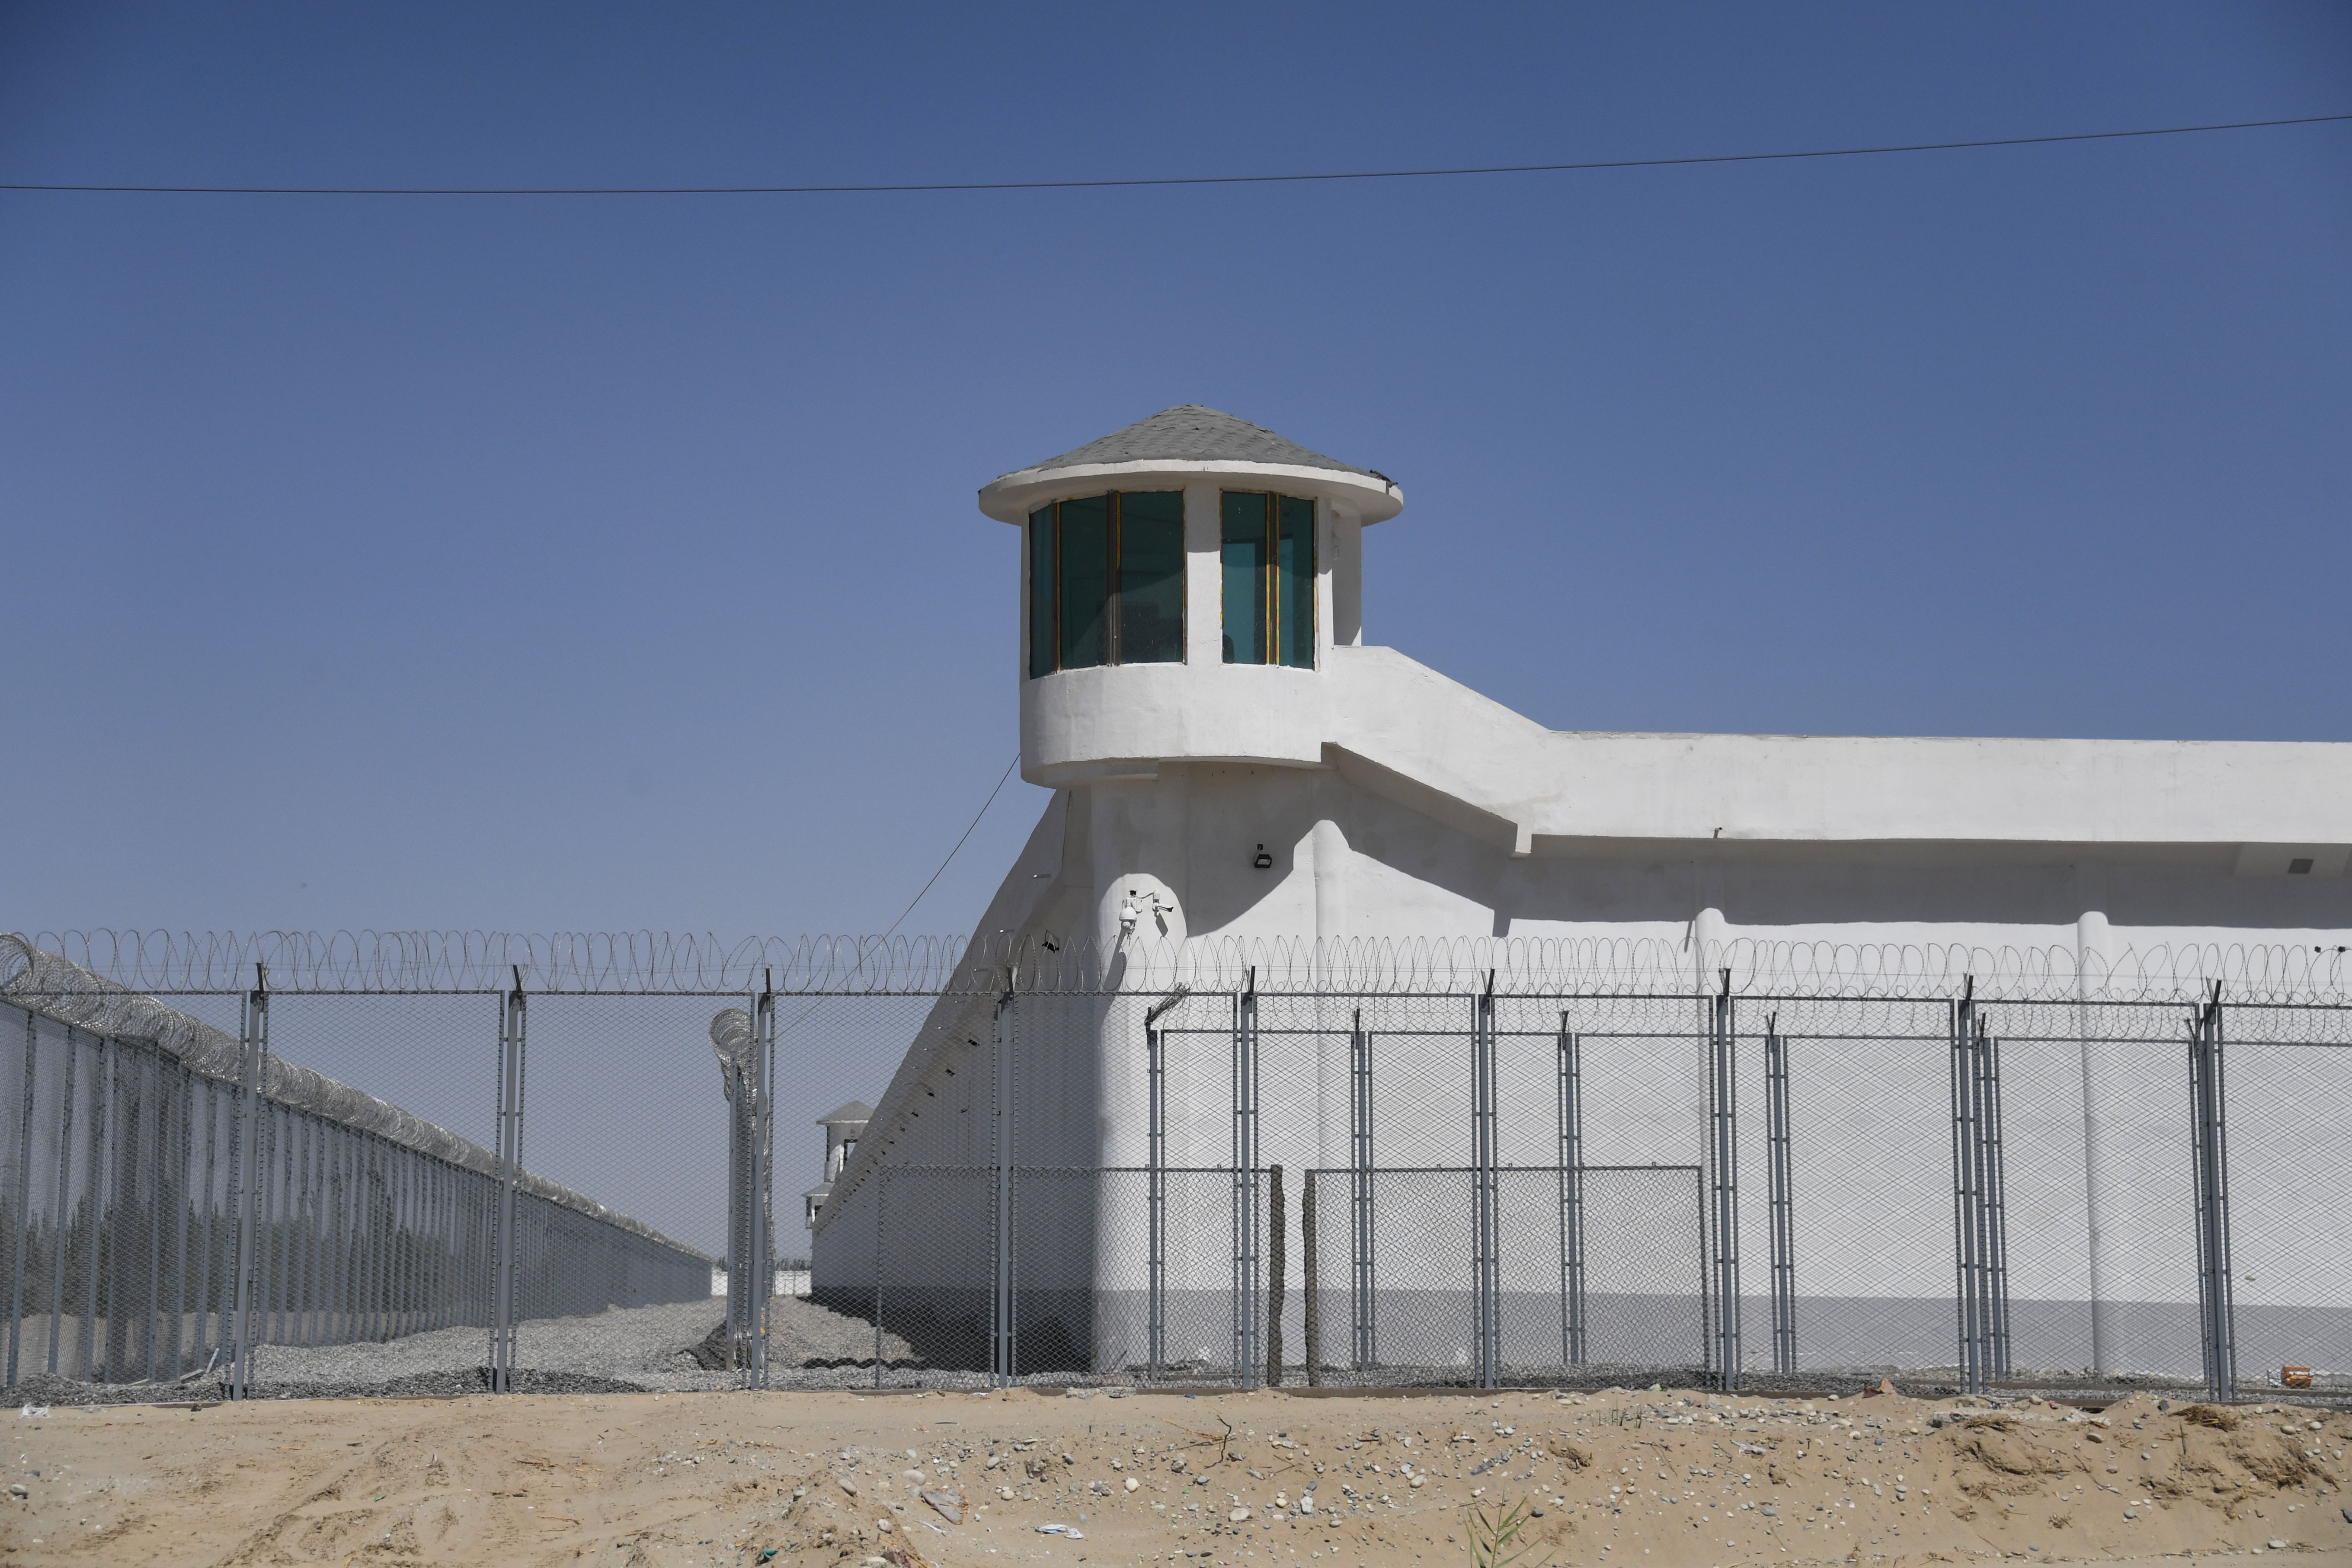 This photo taken on May 31, 2019 shows a watchtower on a high-security facility near what is believed to be a re-education camp where mostly Muslim ethnic minorities are detained, on the outskirts of Hotan, in China's northwestern Xinjiang region. (GREG BAKER/AFP via Getty Images)